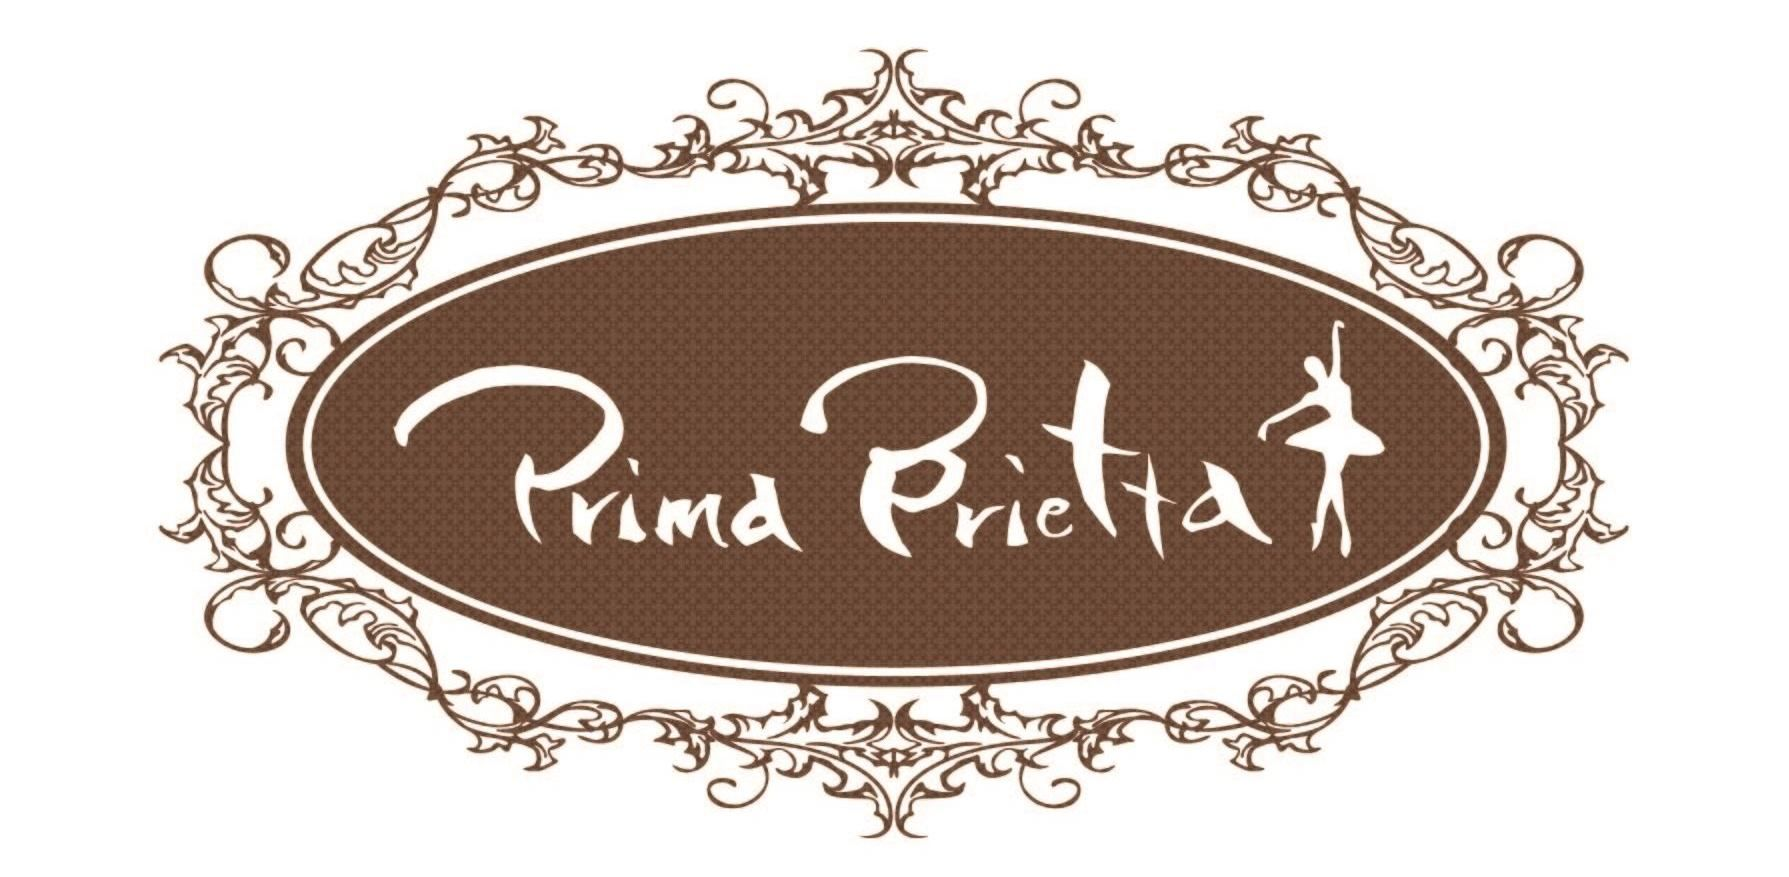 Prima Brietta Online Shop( プリマブリエッタ  )